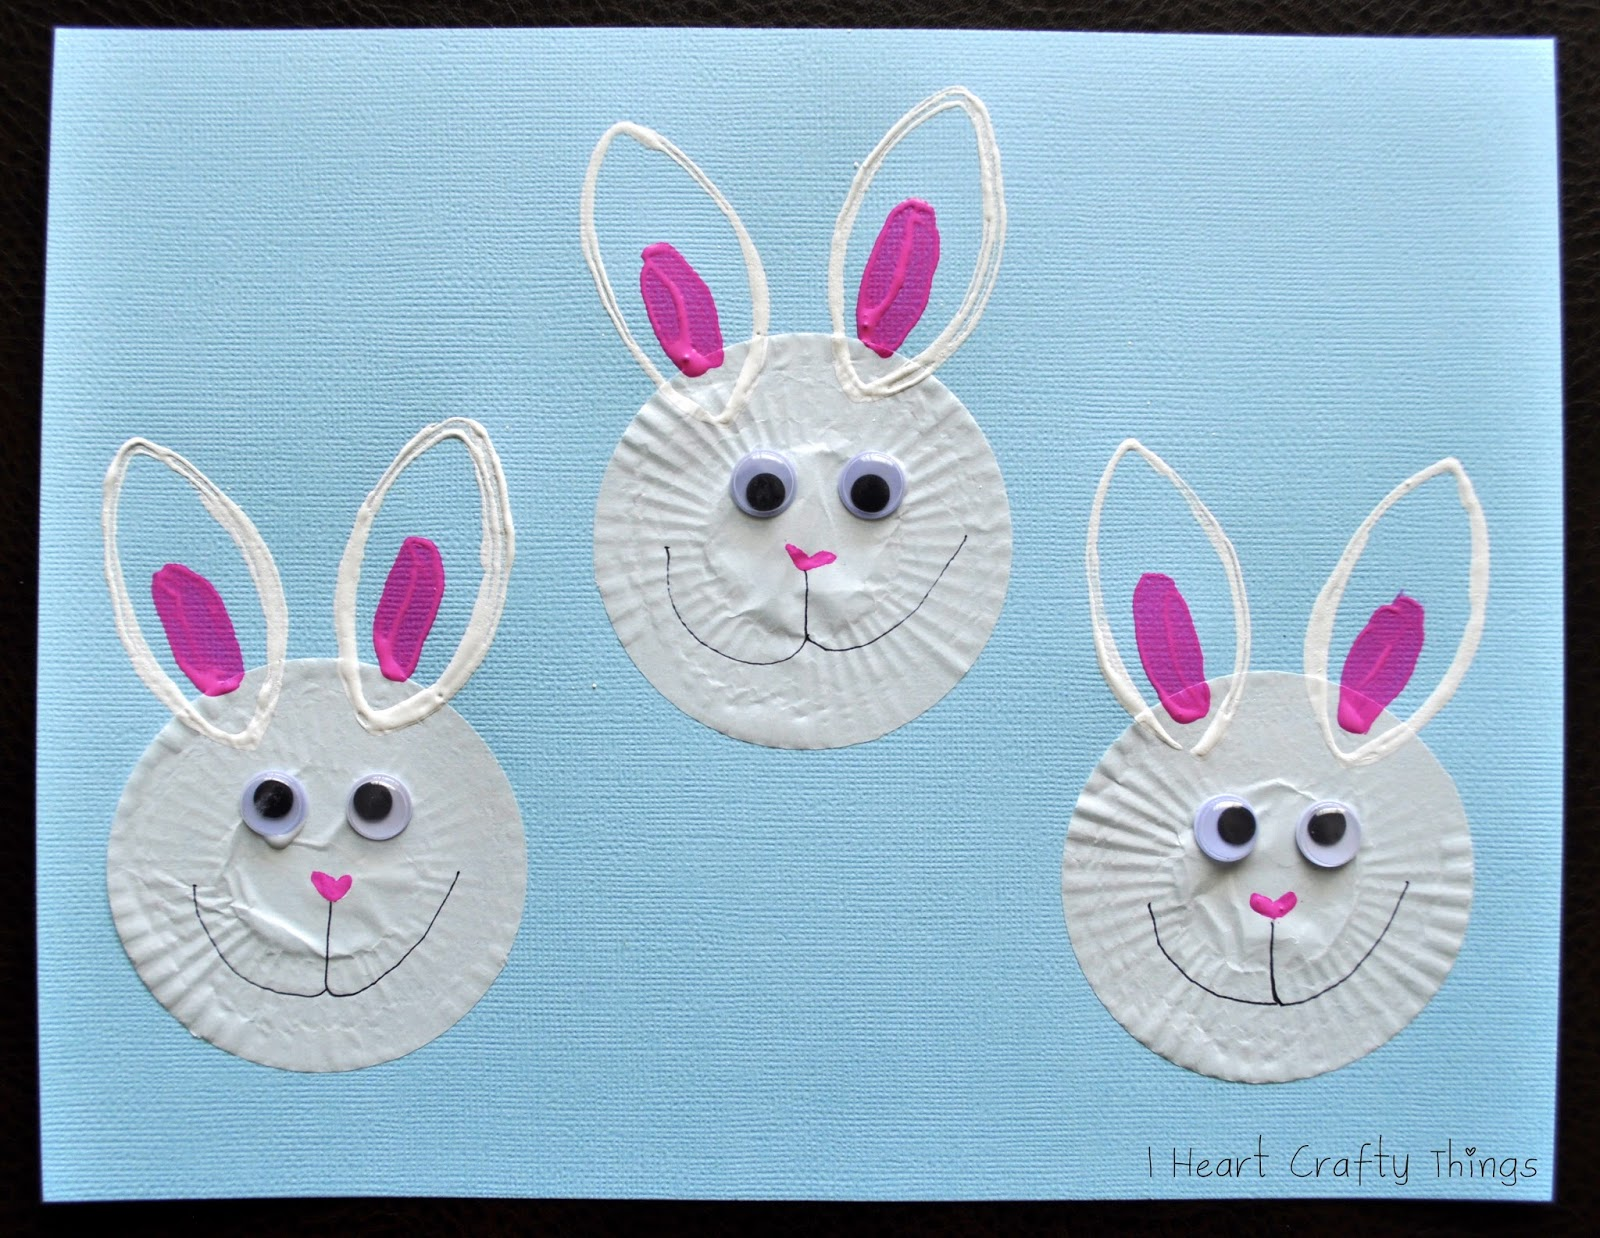 I Heart Crafty Things 15 Cupcake Liner Crafts For Kids